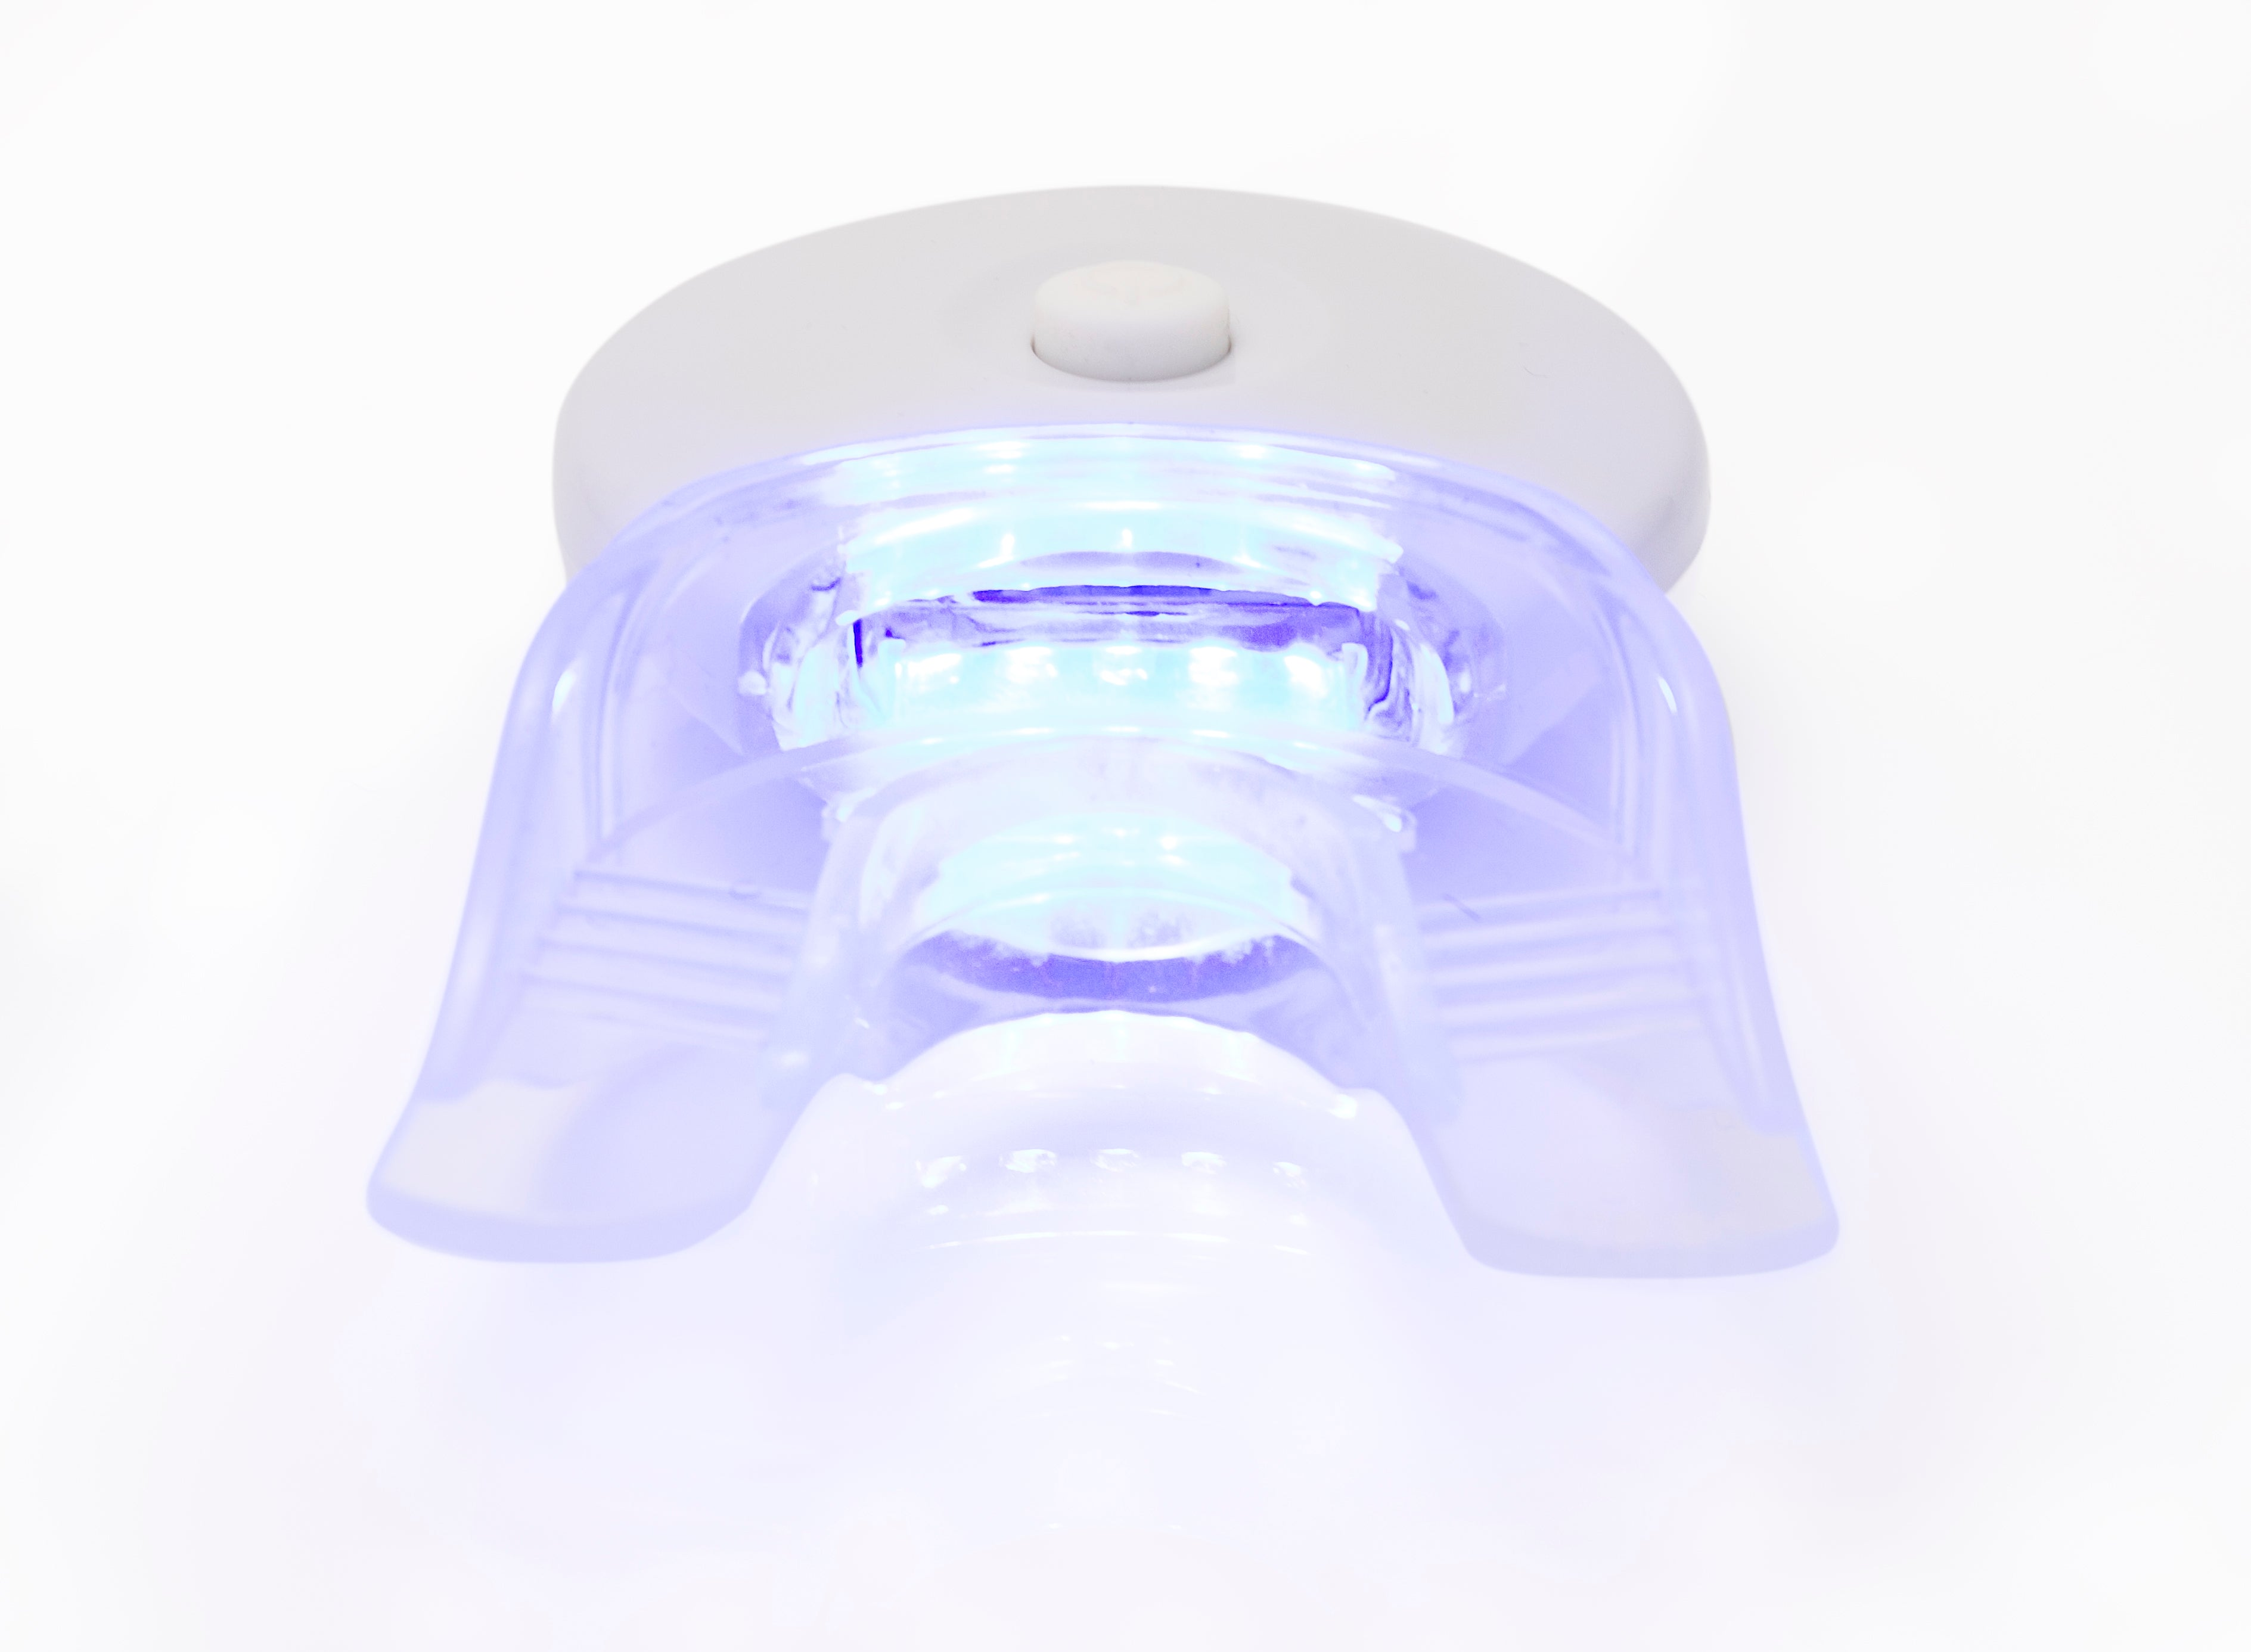 Hollywood Smiles Teeth Whitening Tray and Lamp - Hollywood Smiles Store